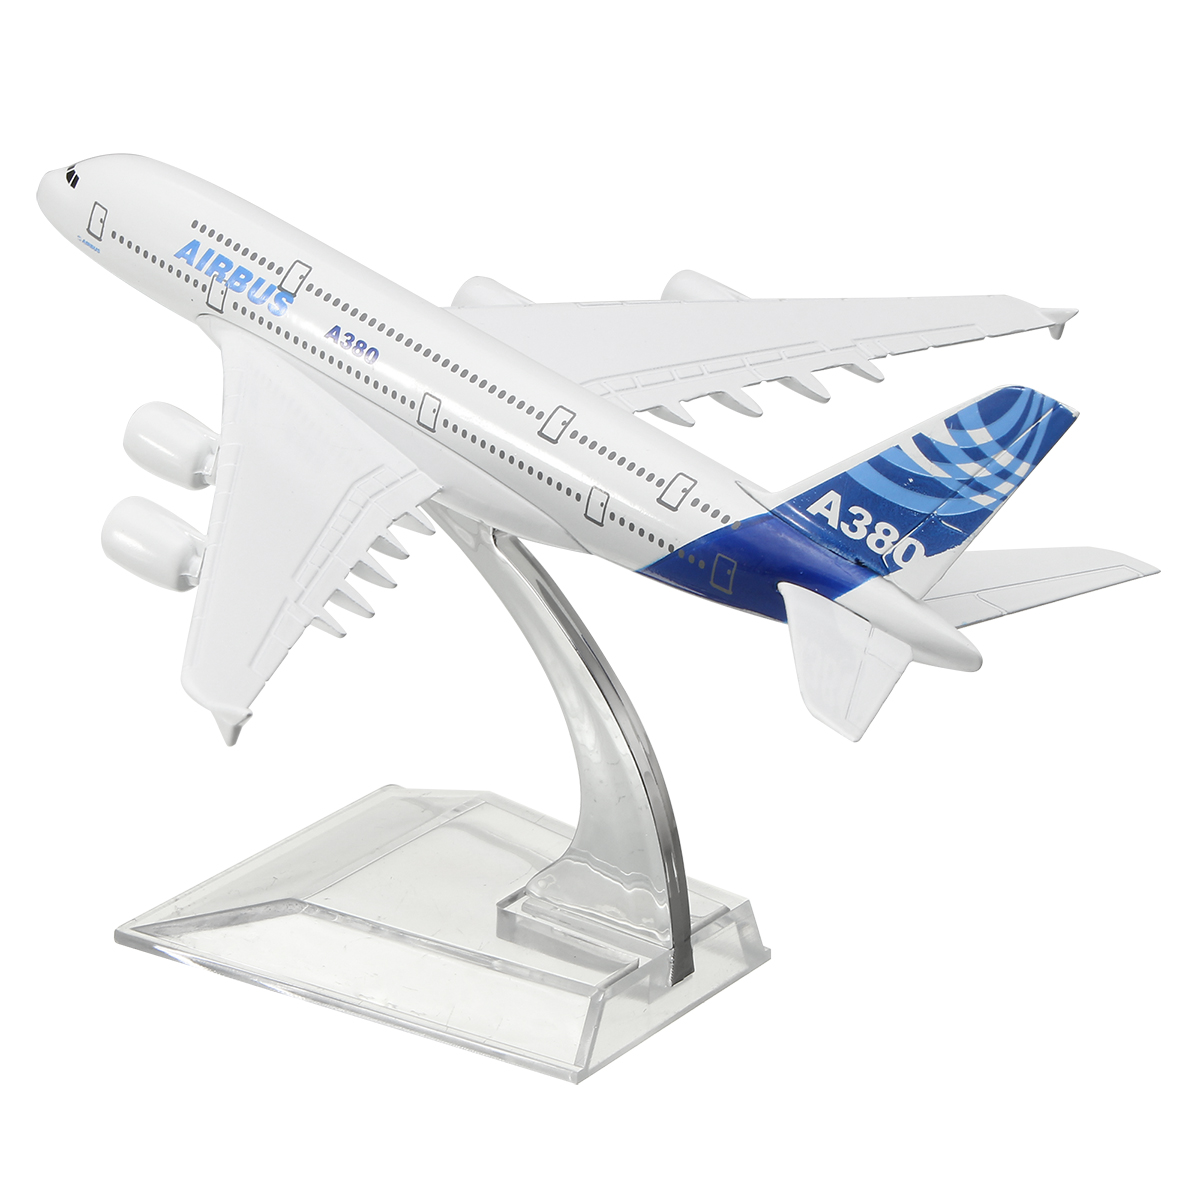 Model Airplane Aircraft Airbus A380 Metal 16cm 1:400 Alloy Collectable Toys Gift